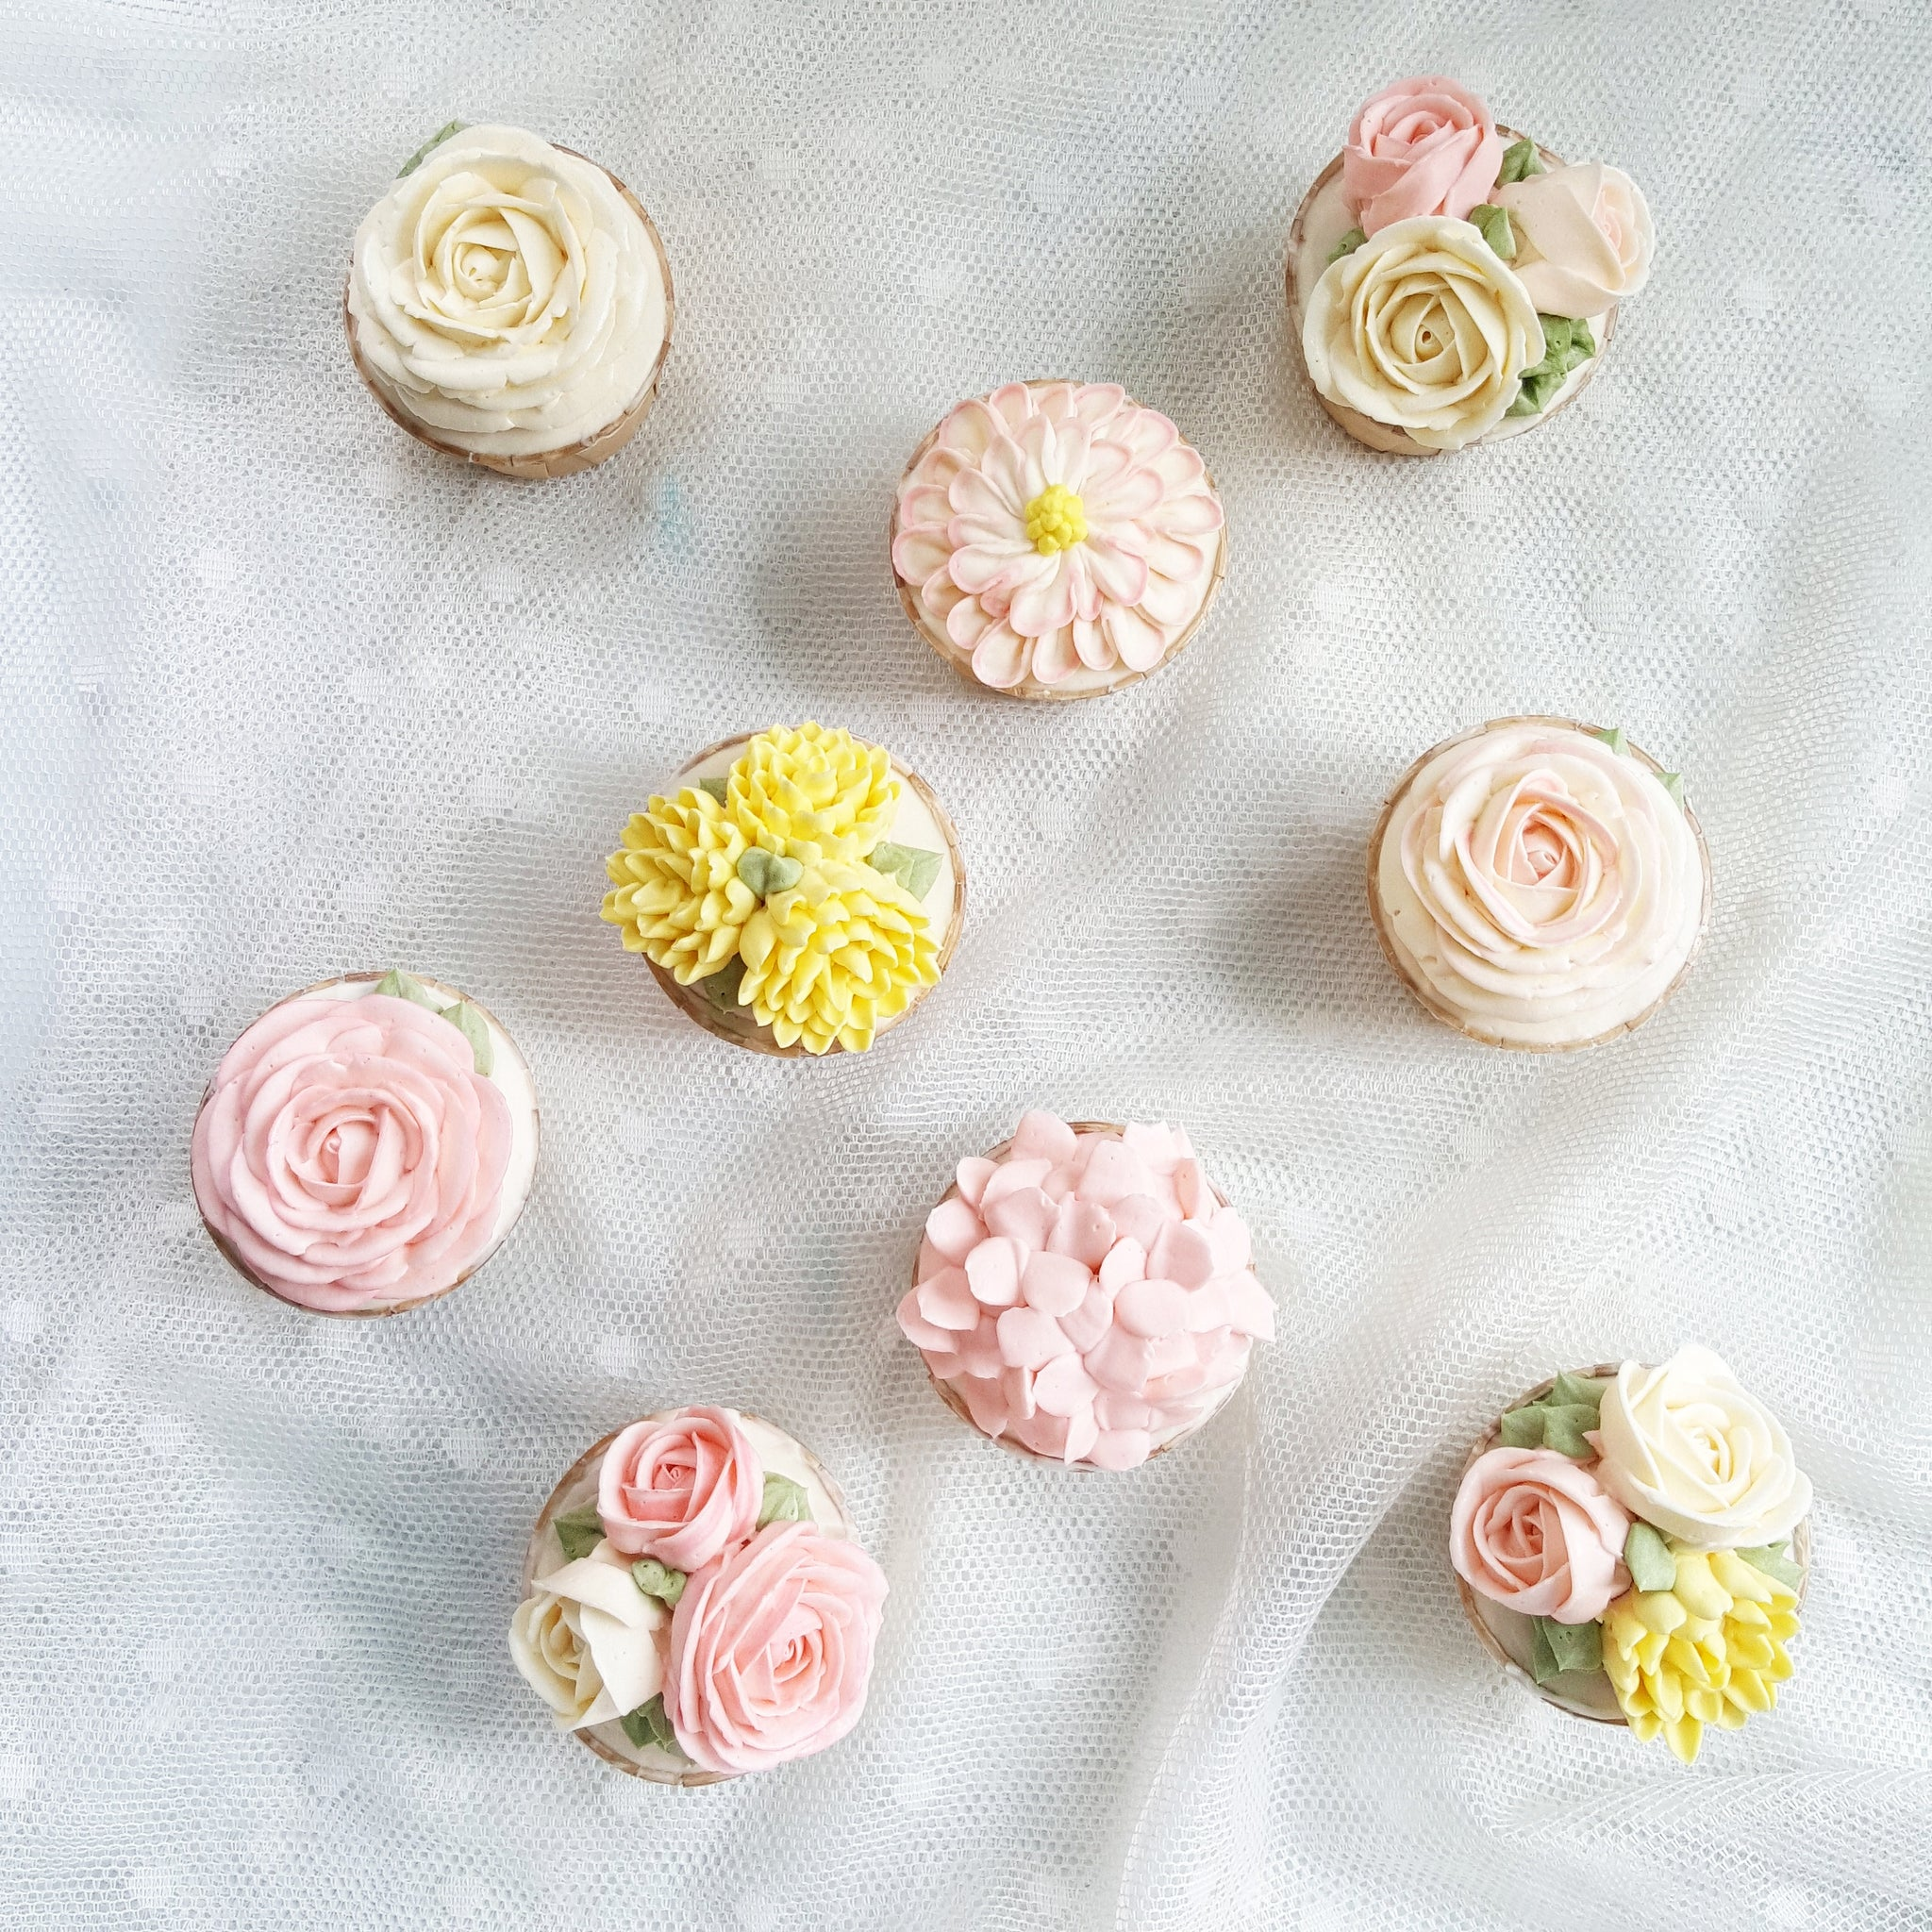 Blossom Floral Cupcakes